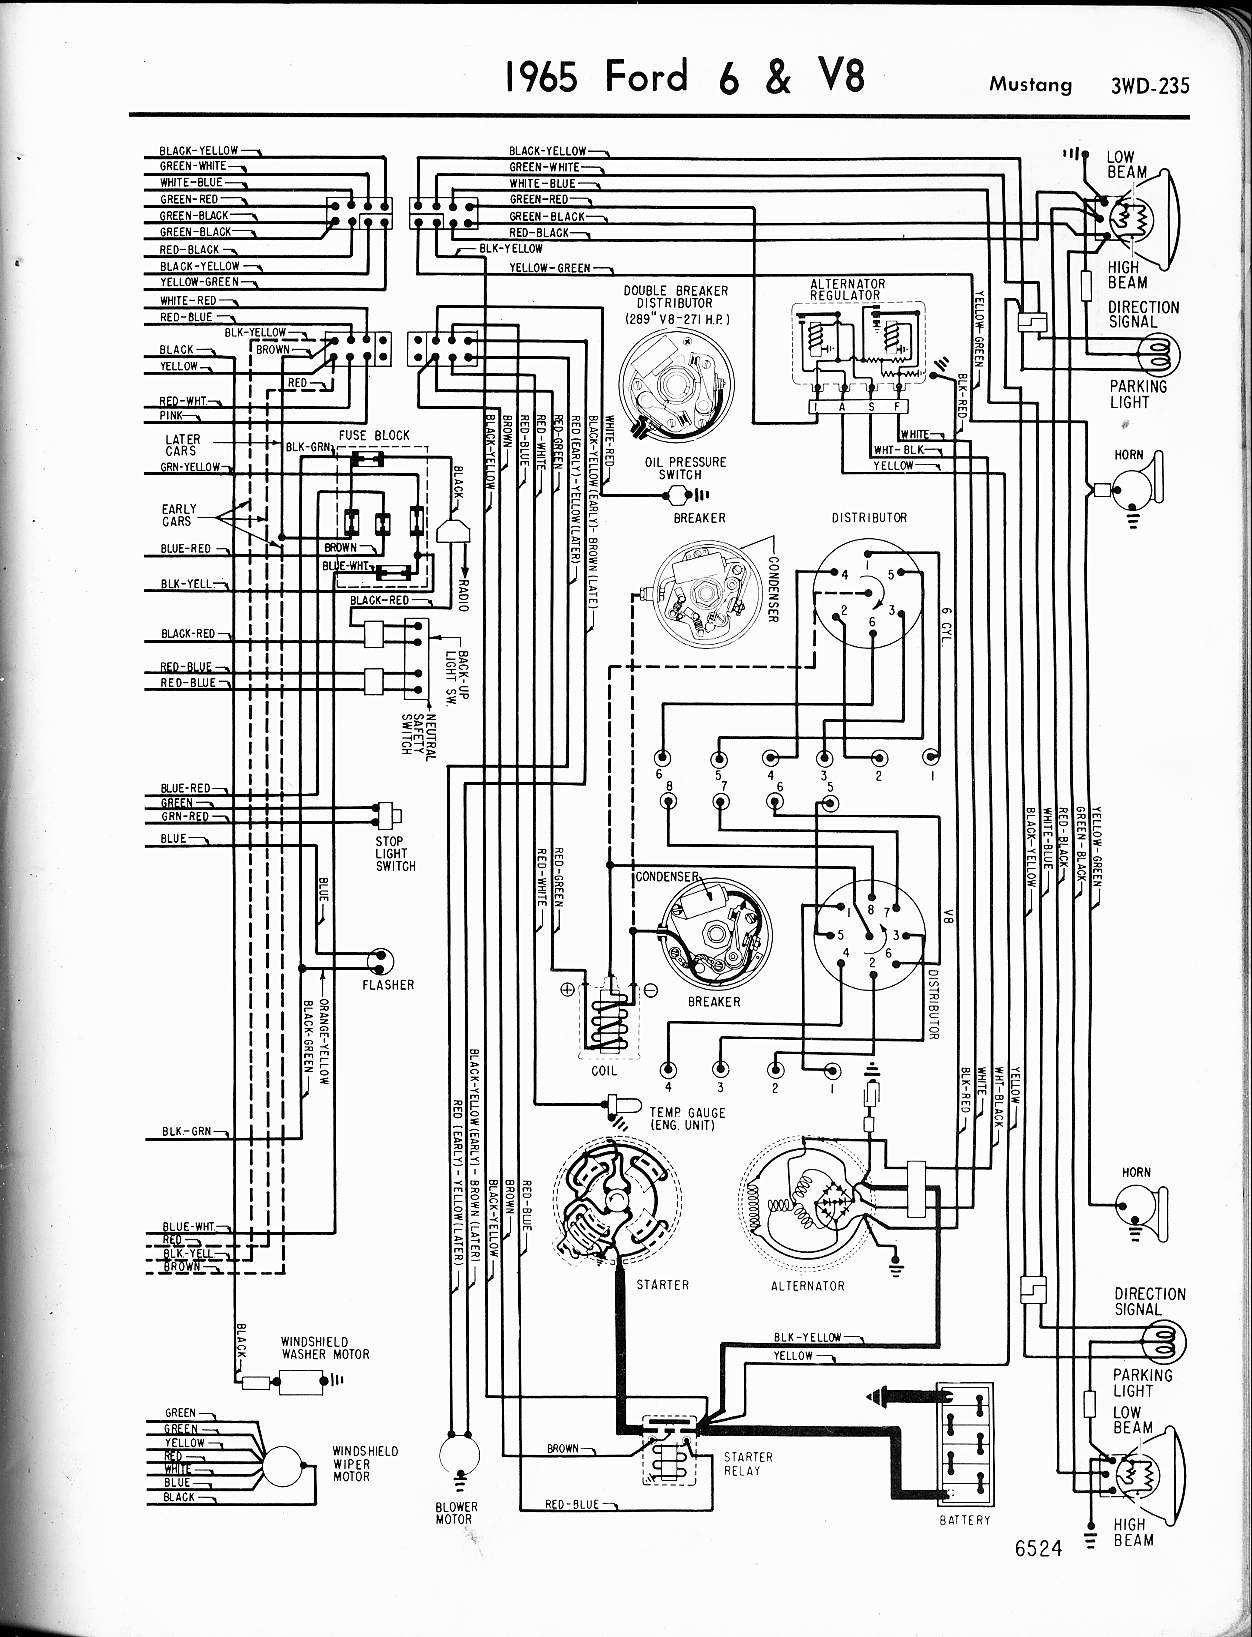 ford diagrams Ford Alternator Regulator Wiring 65 mustang wiring diagram 2 drawing b